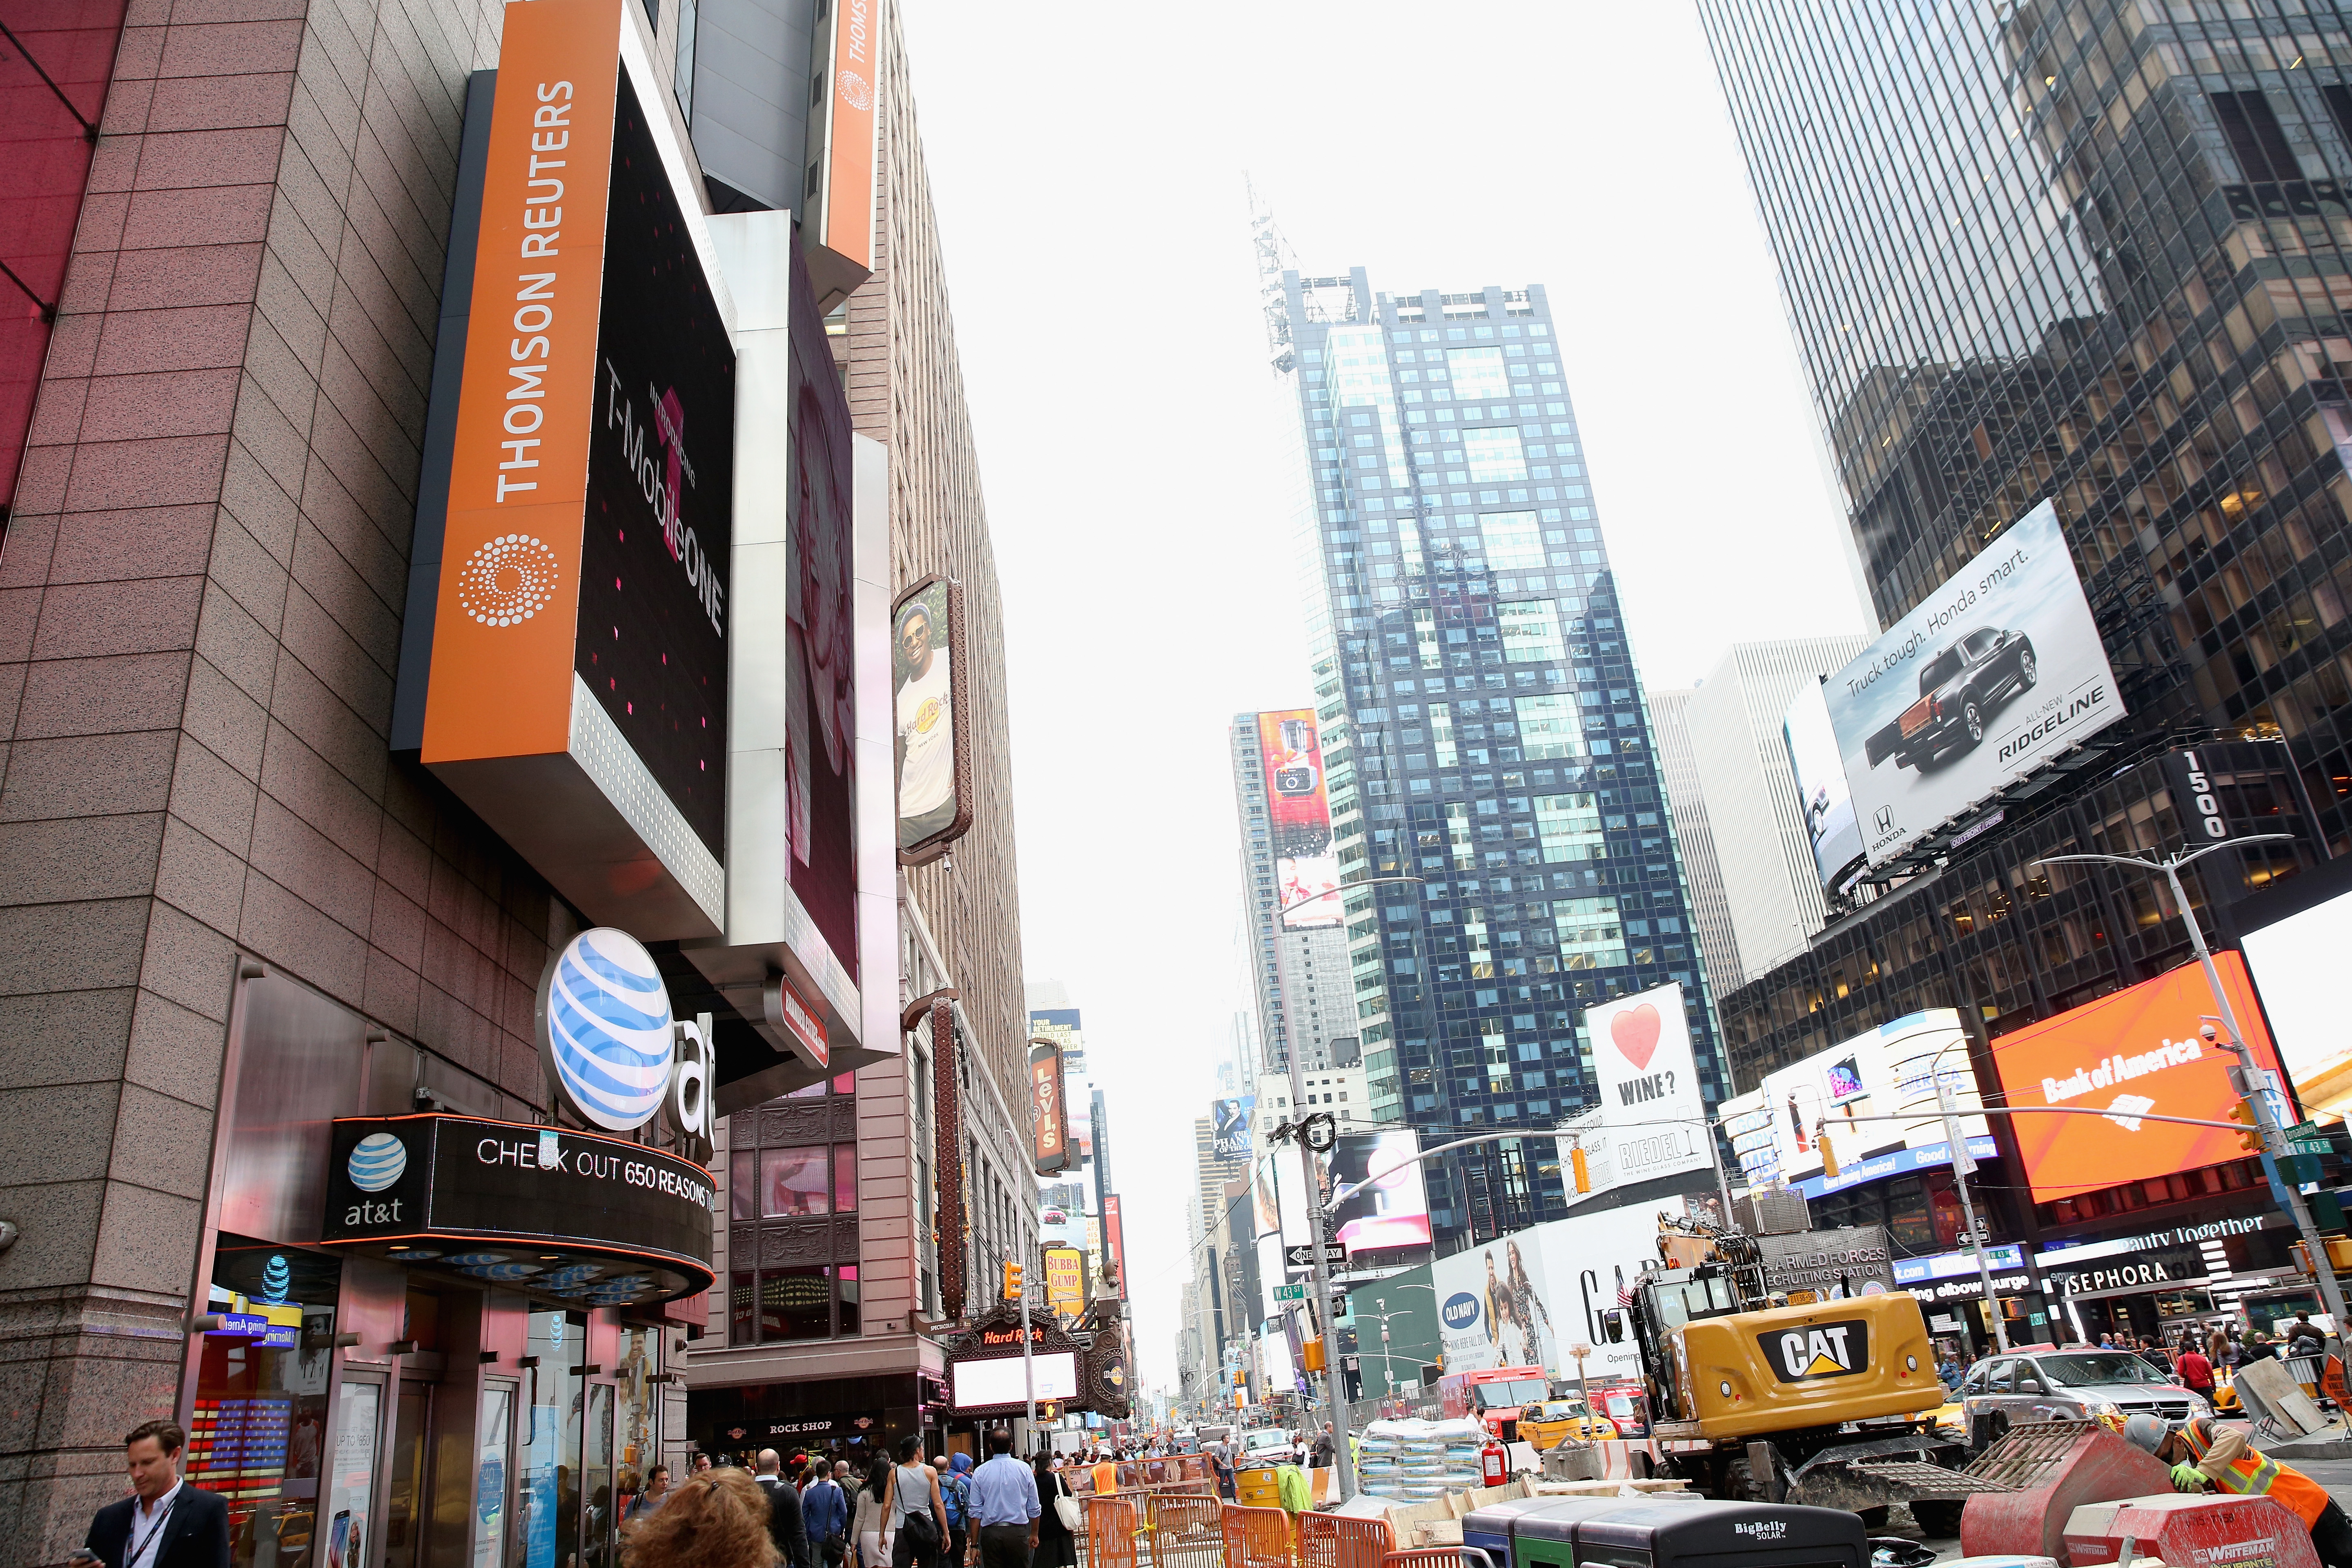 A view outside at Thomson Reuters during 2016 Advertising Week New York on September 28, 2016 in New York City.